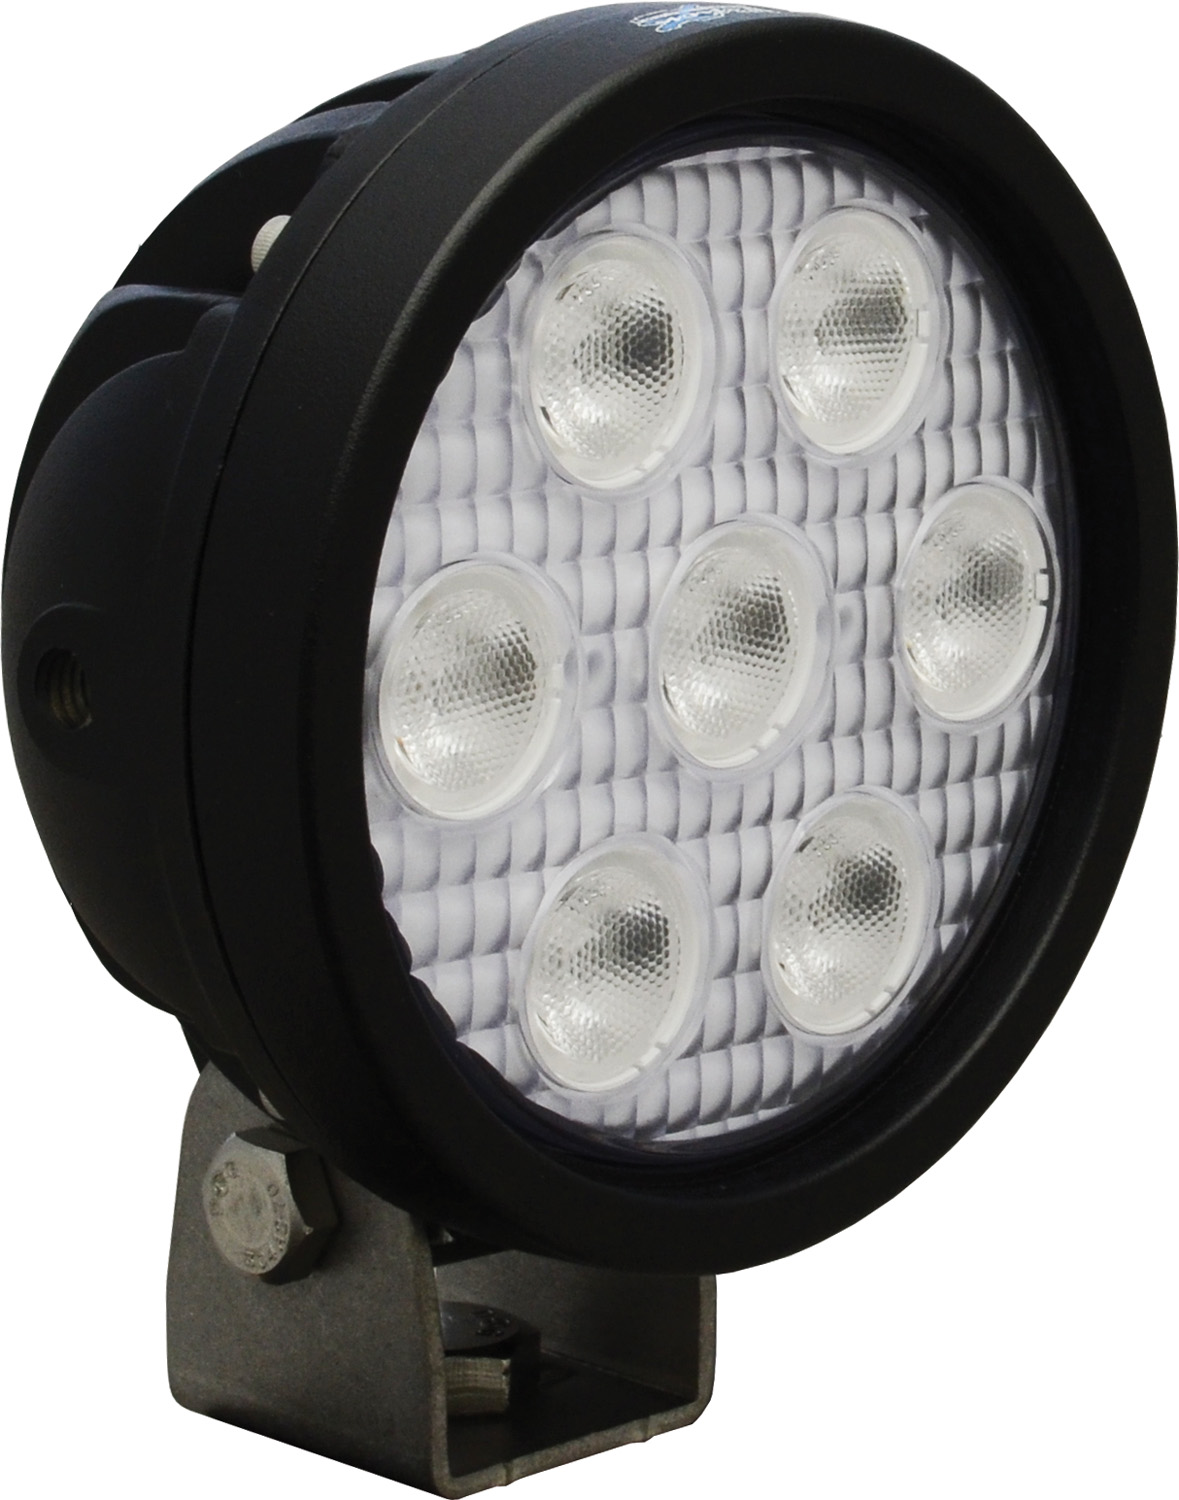 "4"" ROUND UTILITY MARKET BLACK 7 3W RED LED'S 40ç WIDE"